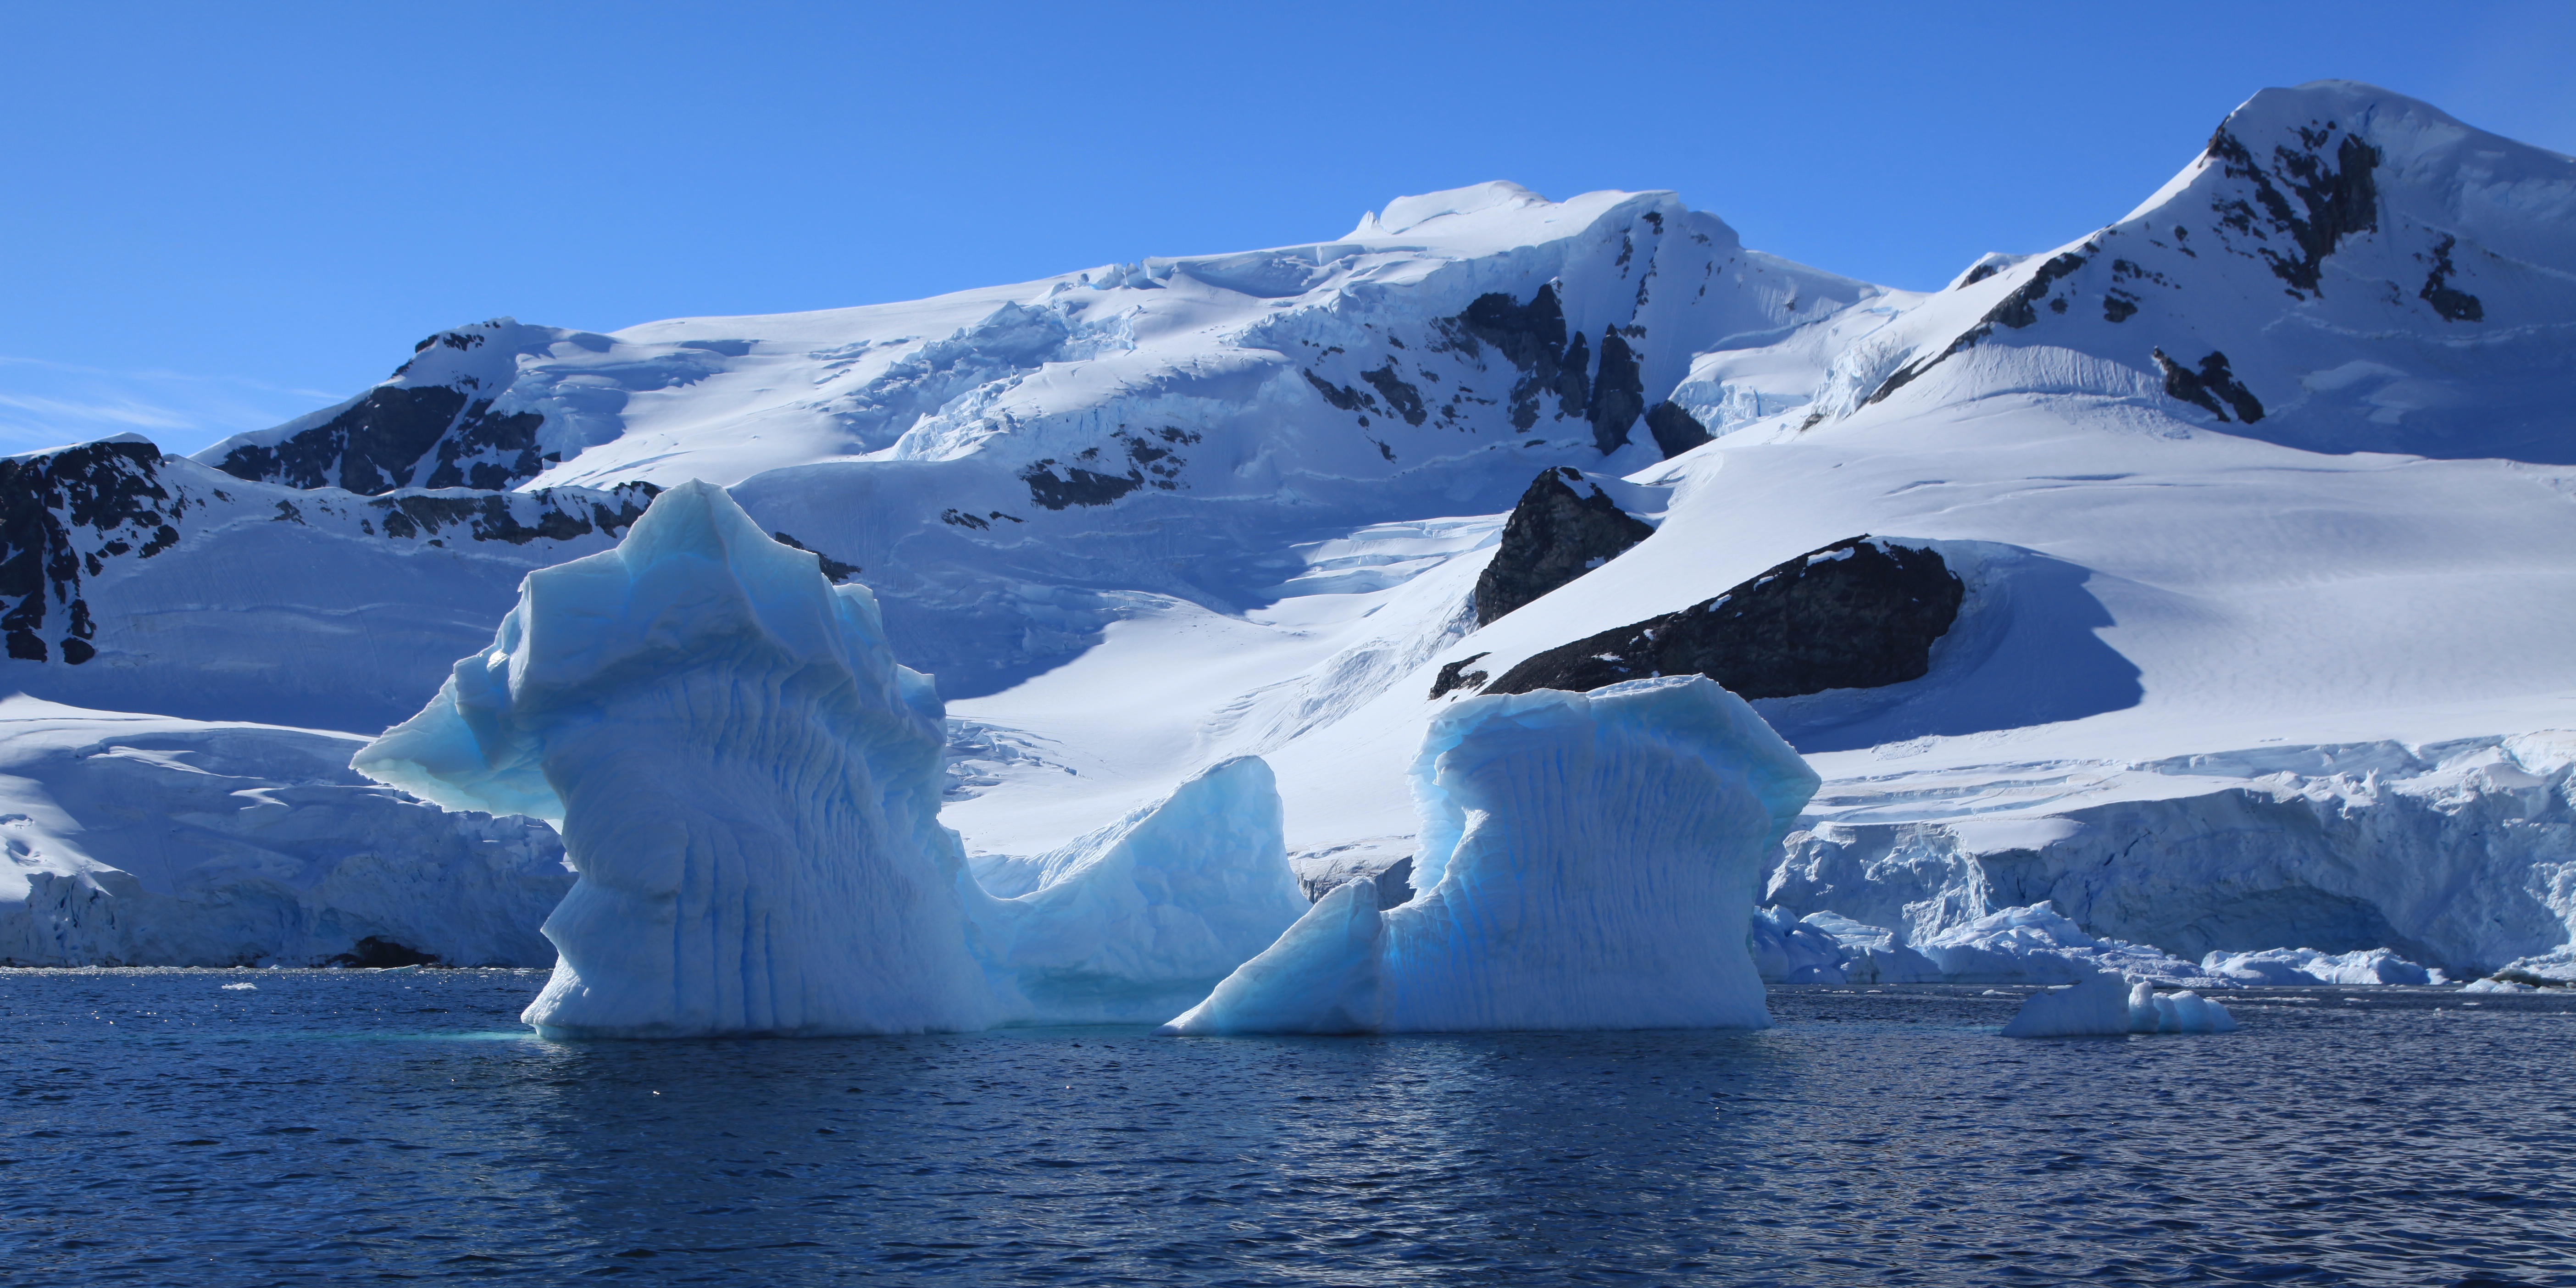 An iceberg in Paradise Harbour, Antarctica (Credit: Liam Quinn, CC BY-SA 2.0)